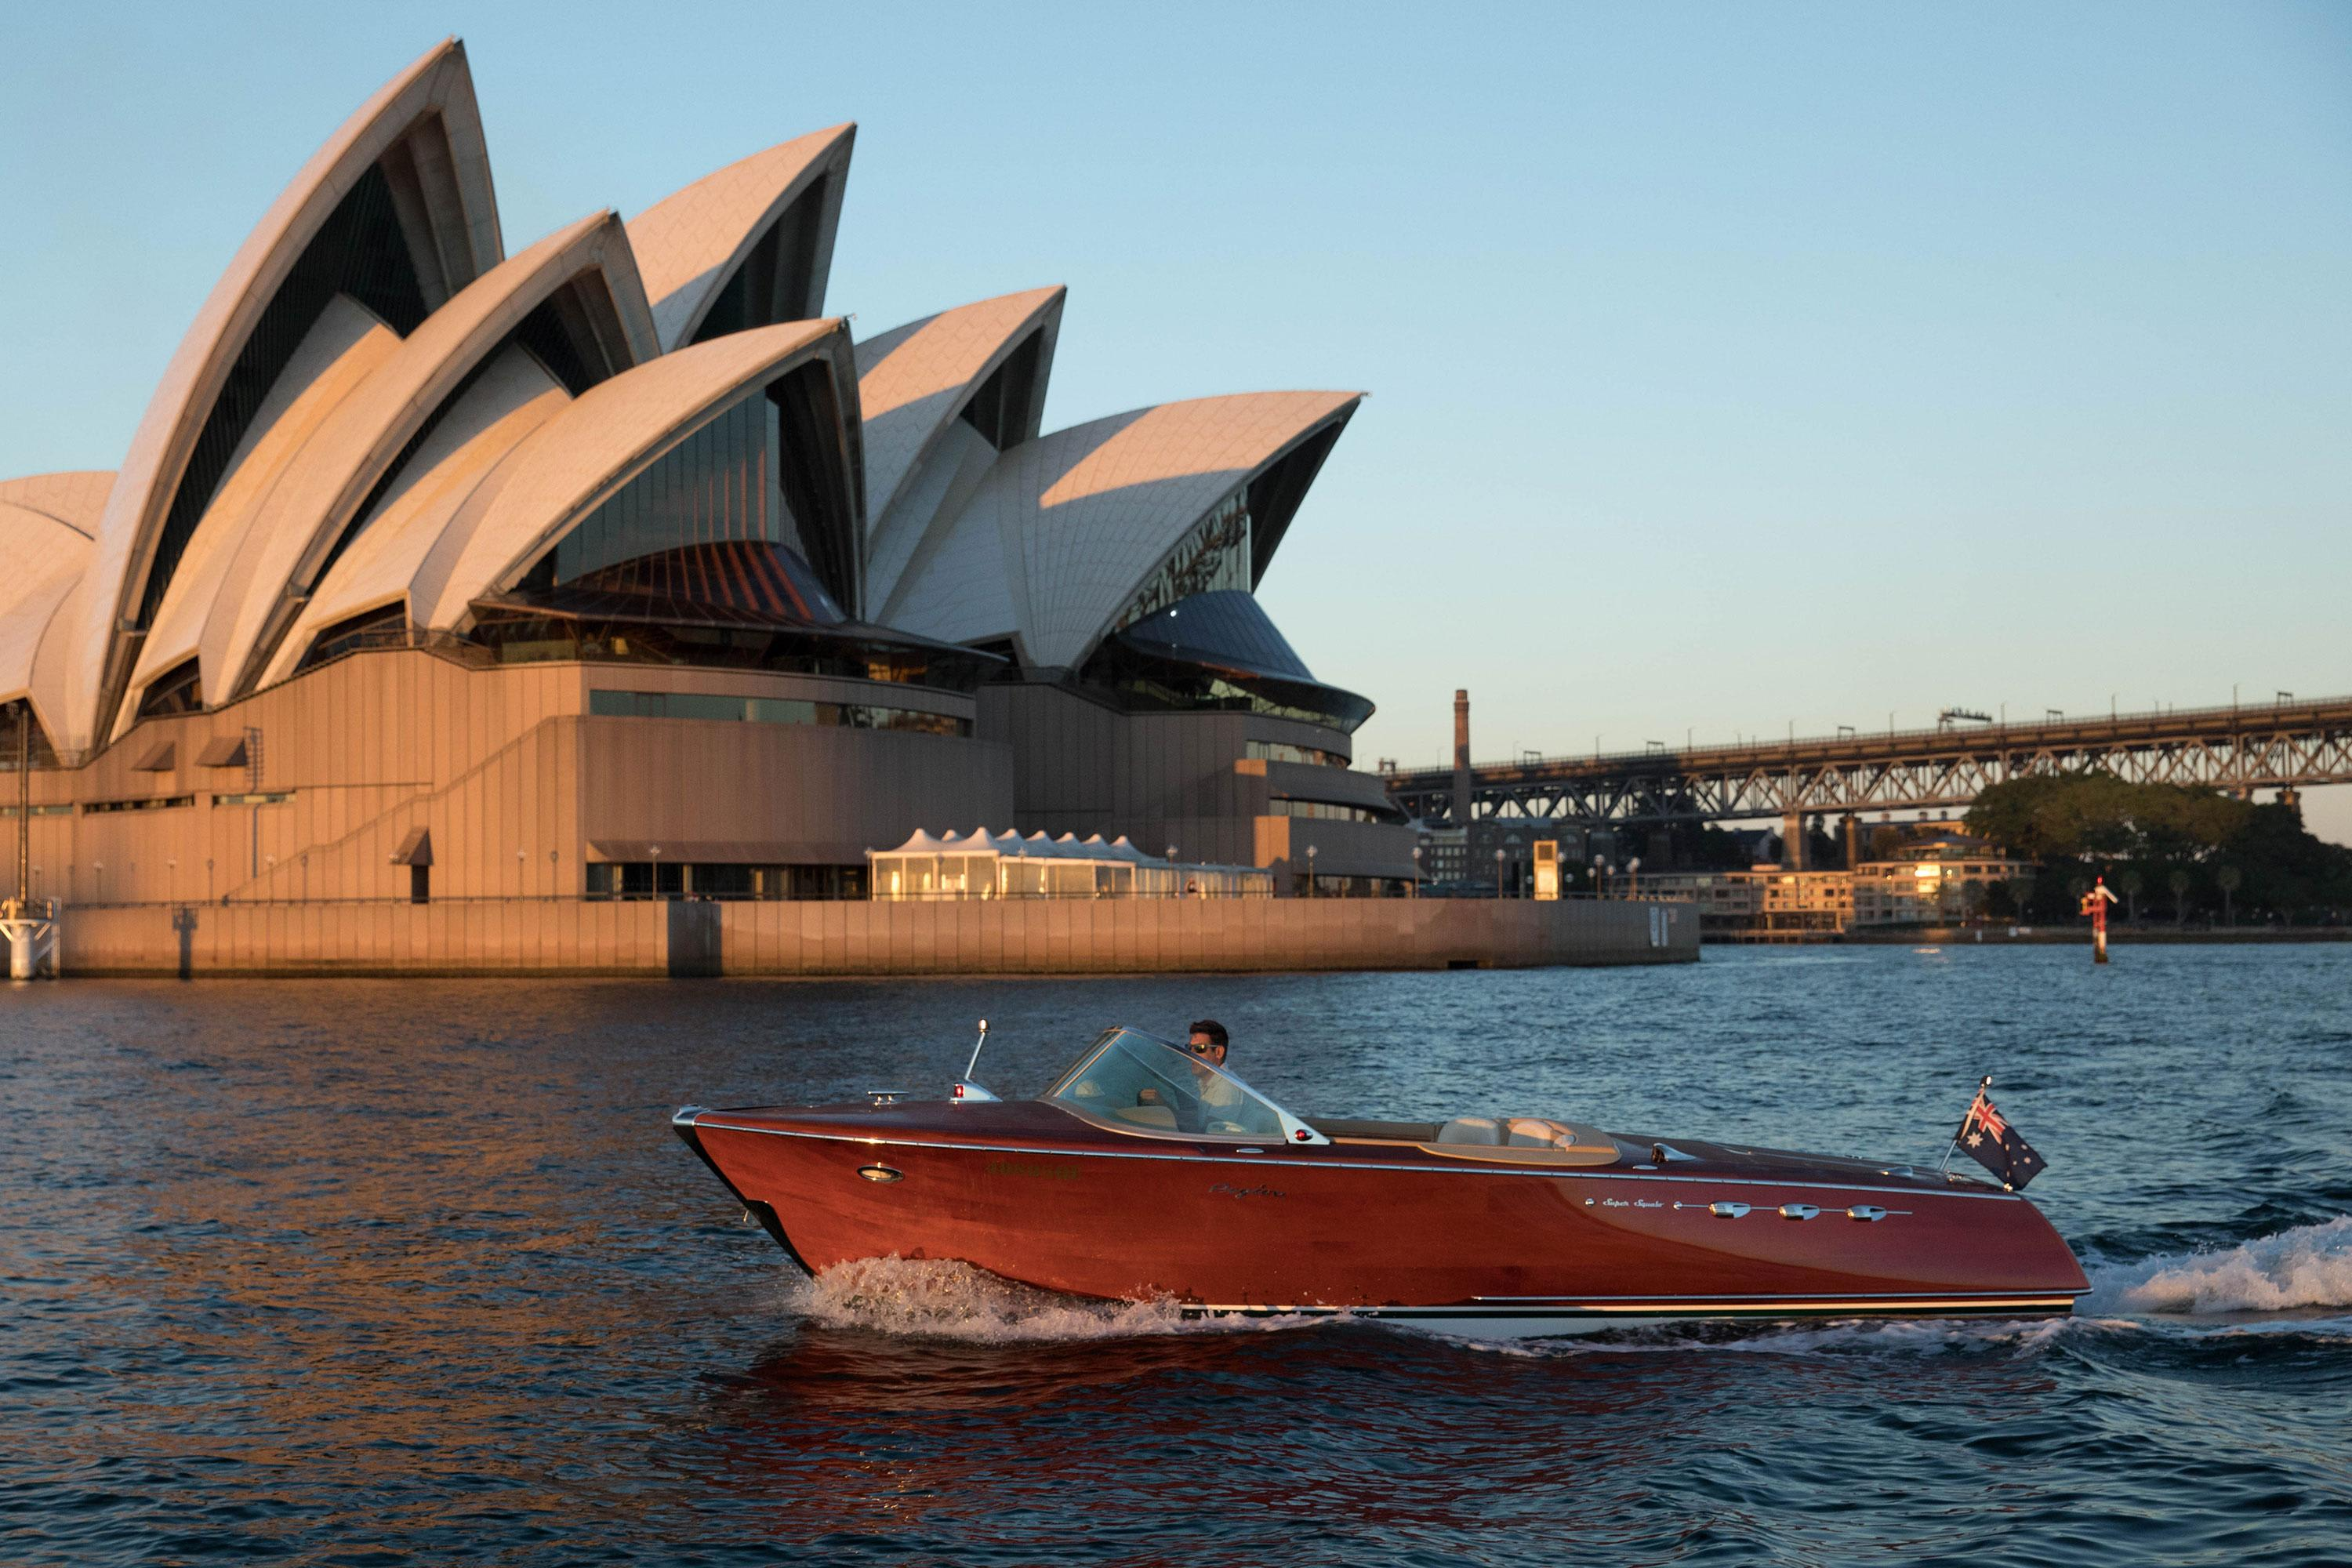 Sydney Harbour Private Luxury Cruise, 2 Hours - For 4